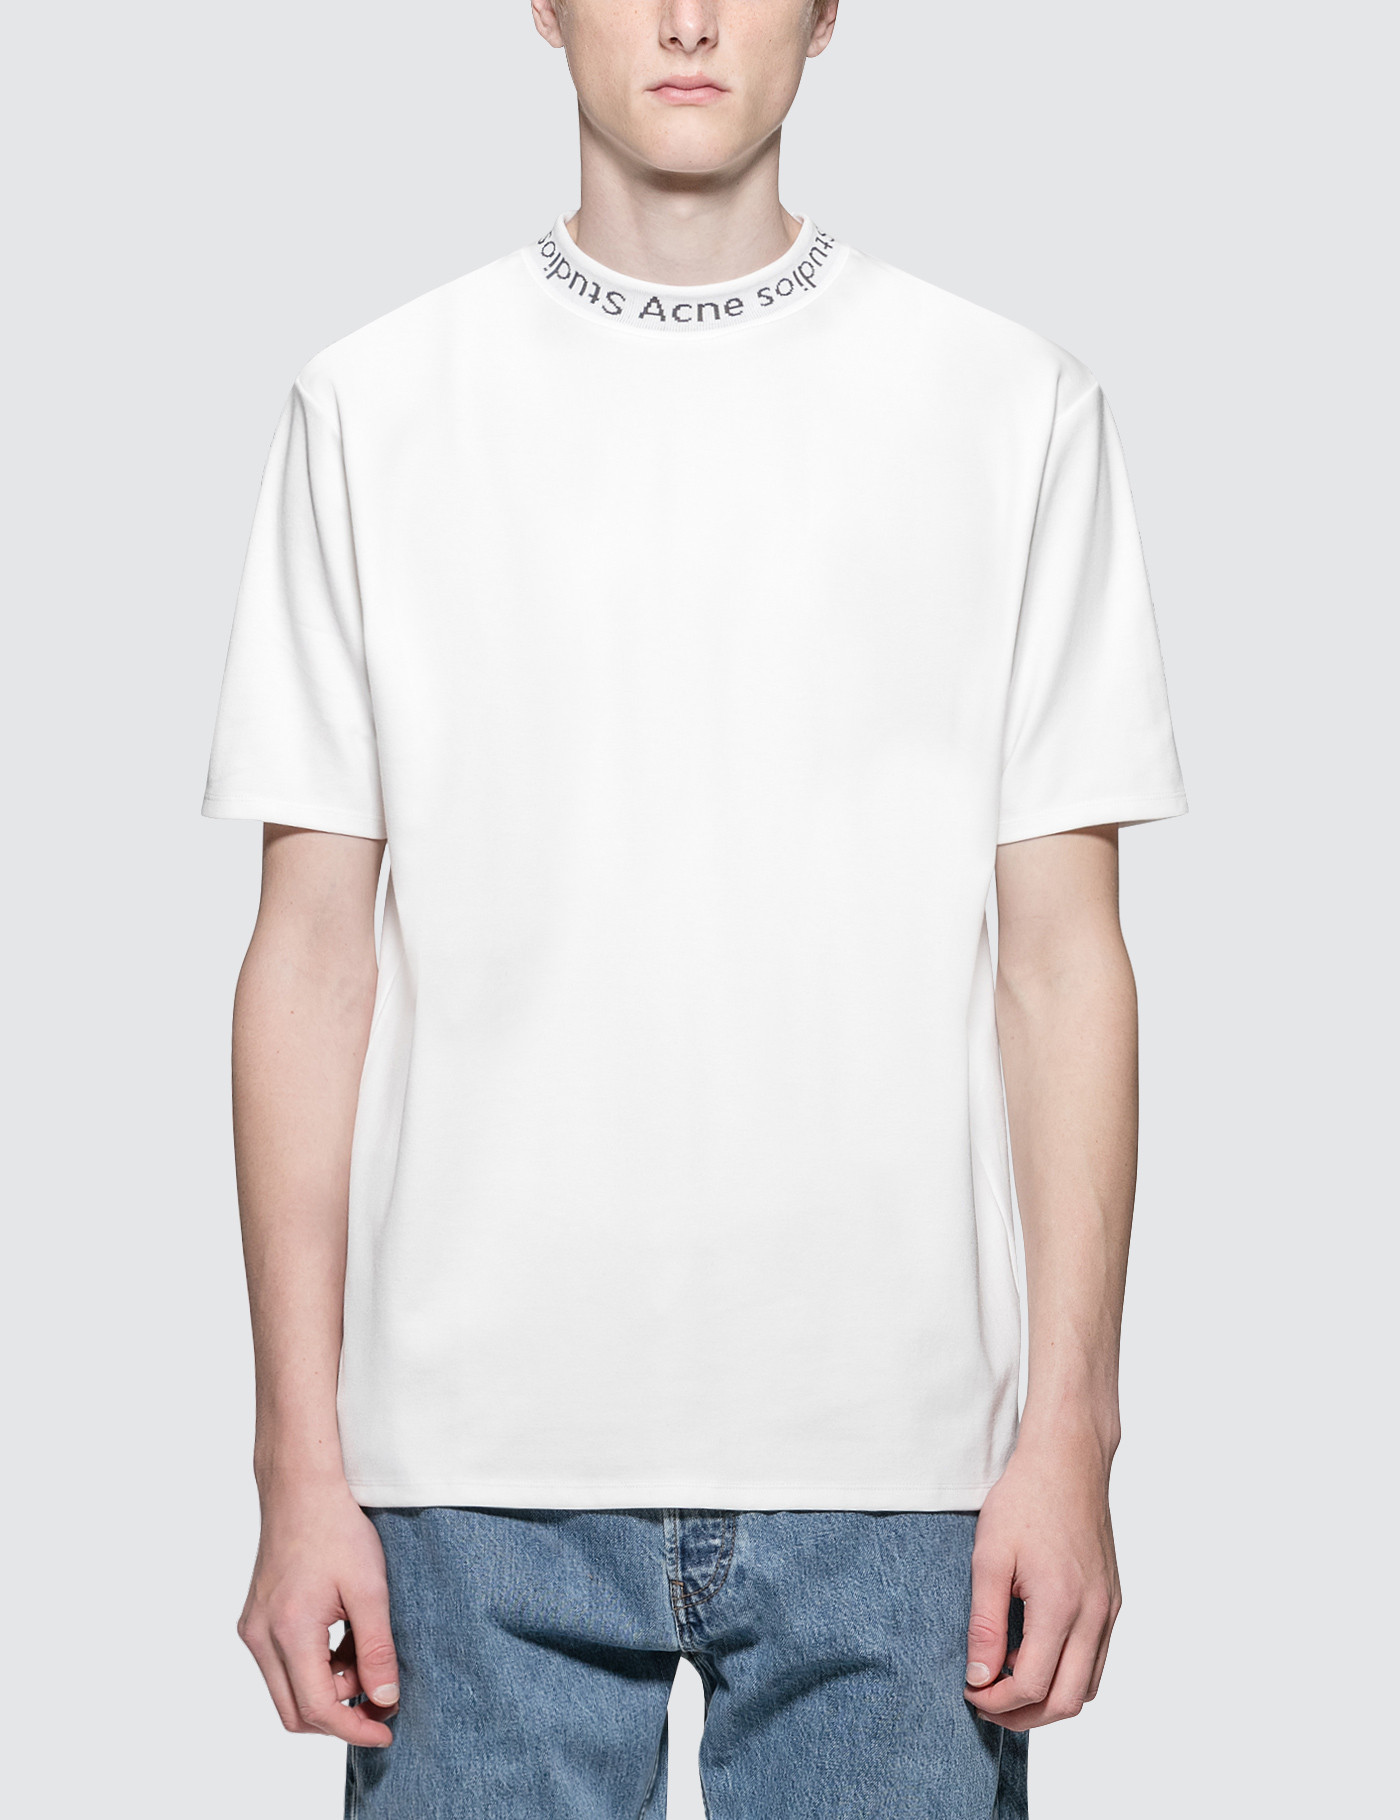 ffd74620f4ebeb Buy Original Acne Studios Navid S S T-Shirt at Indonesia